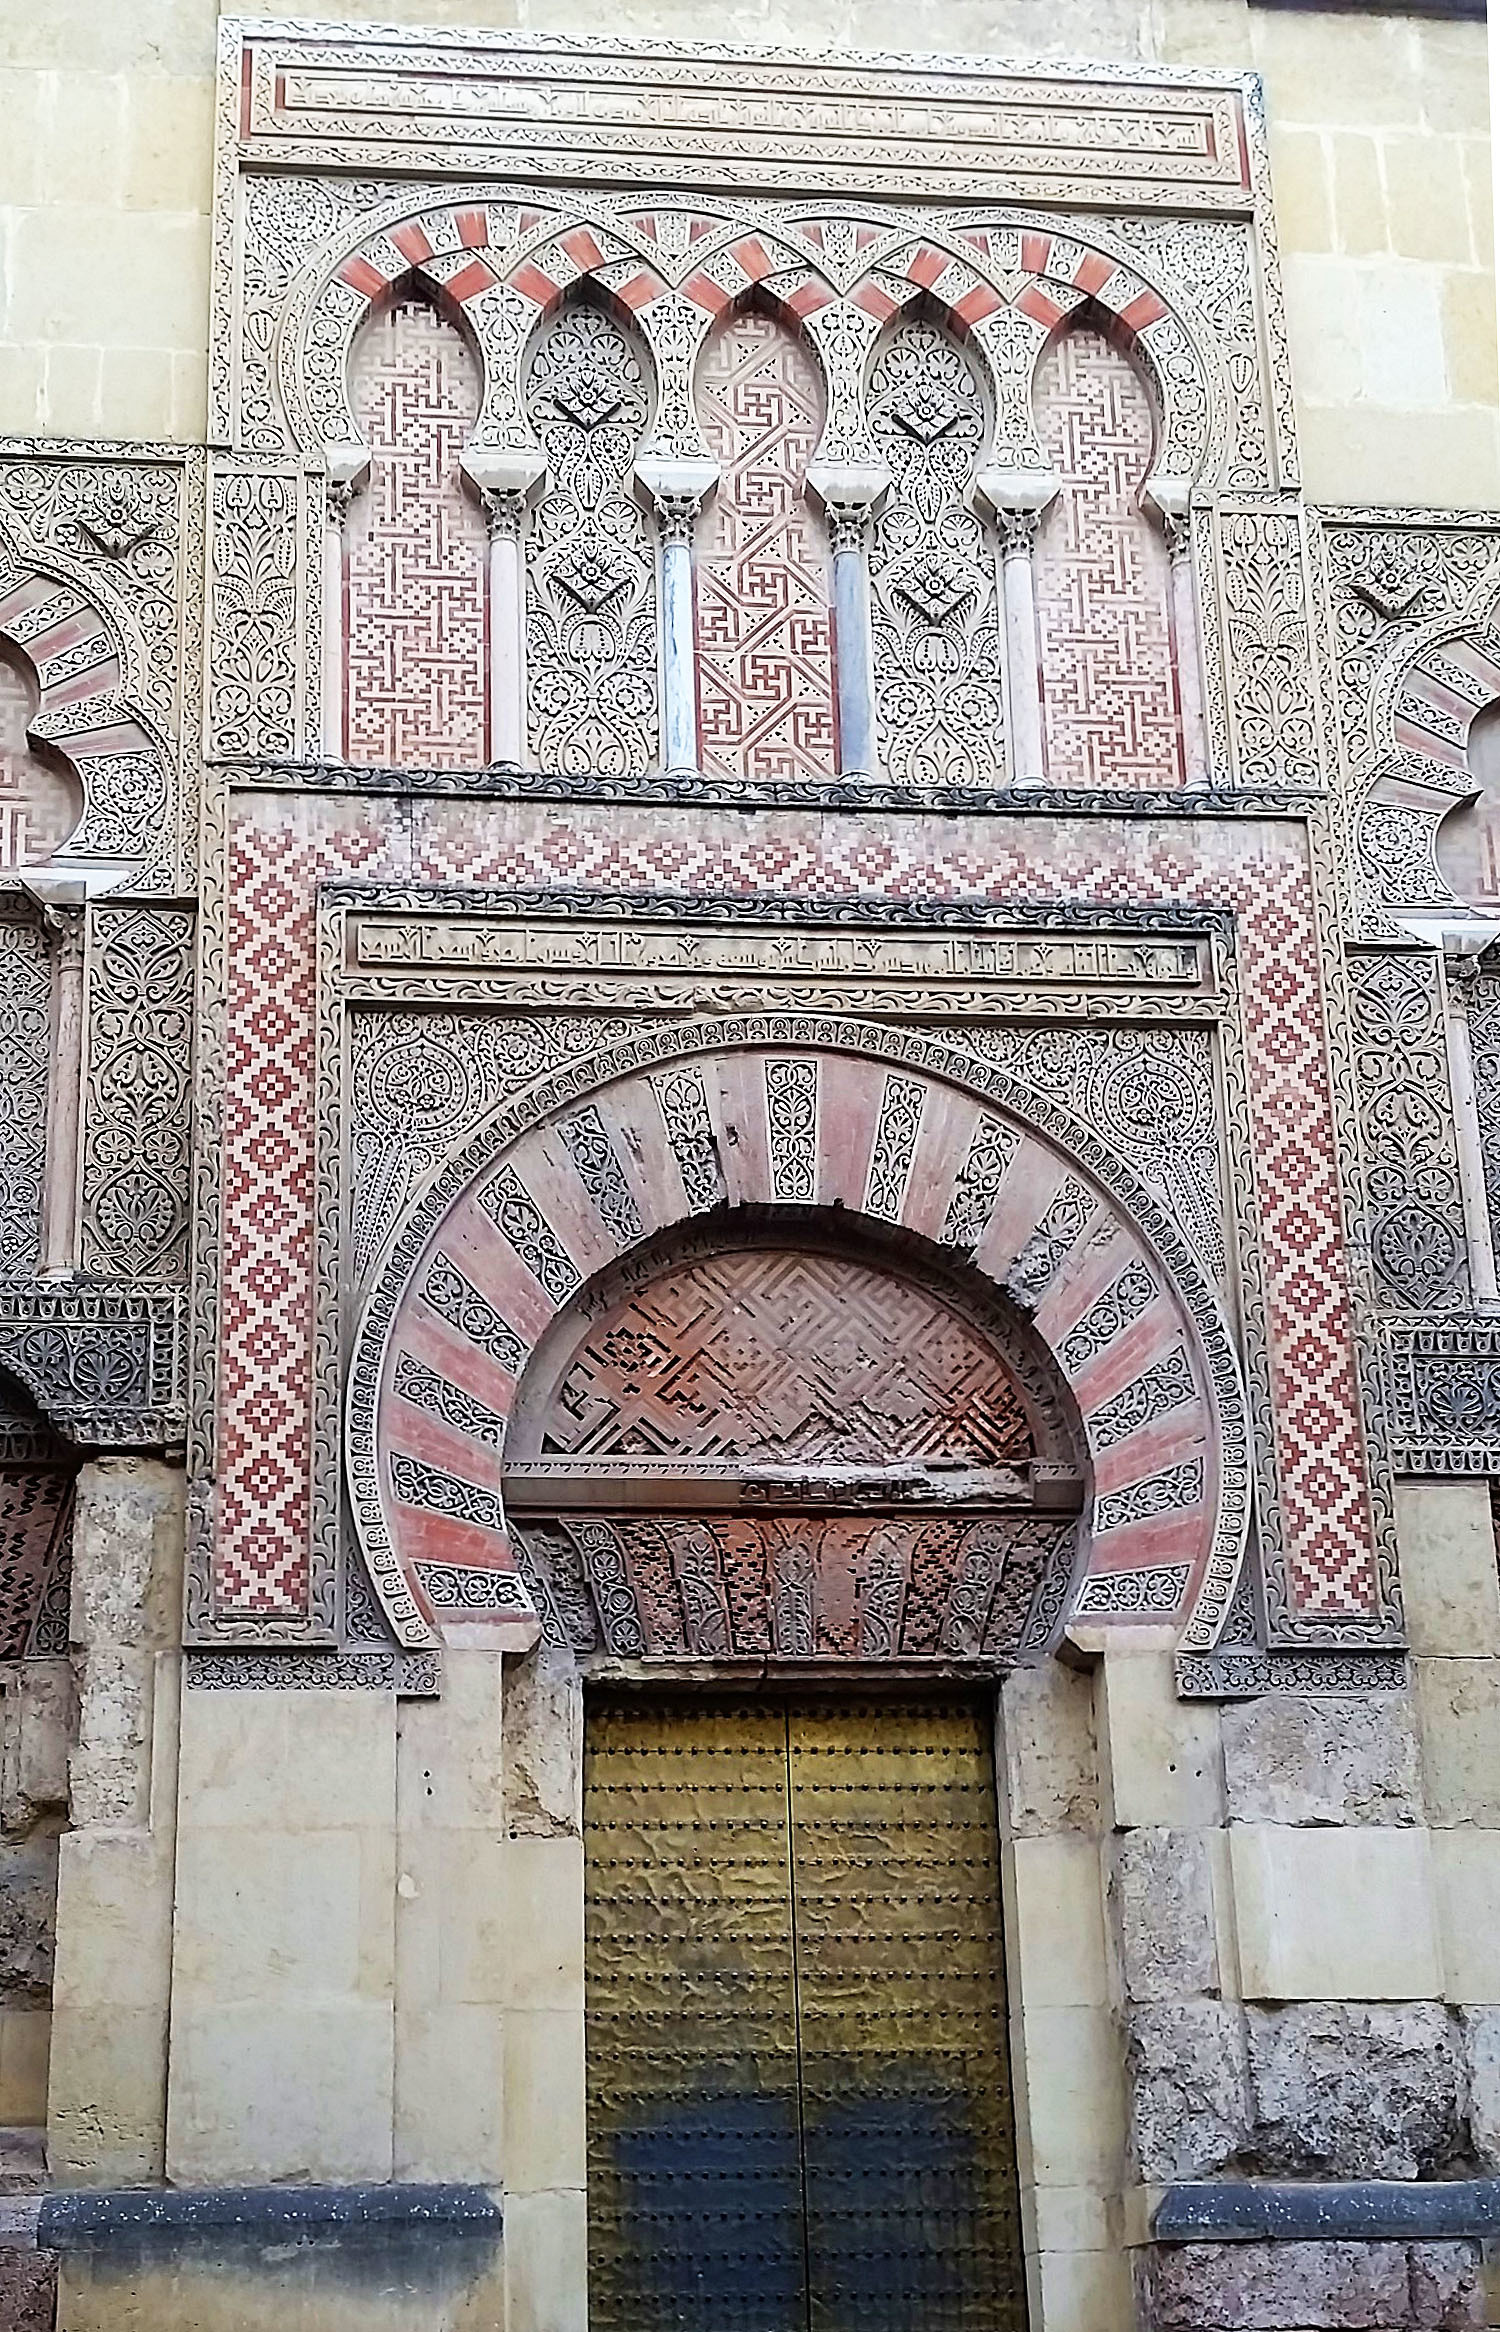 A view of a door to the mosque.